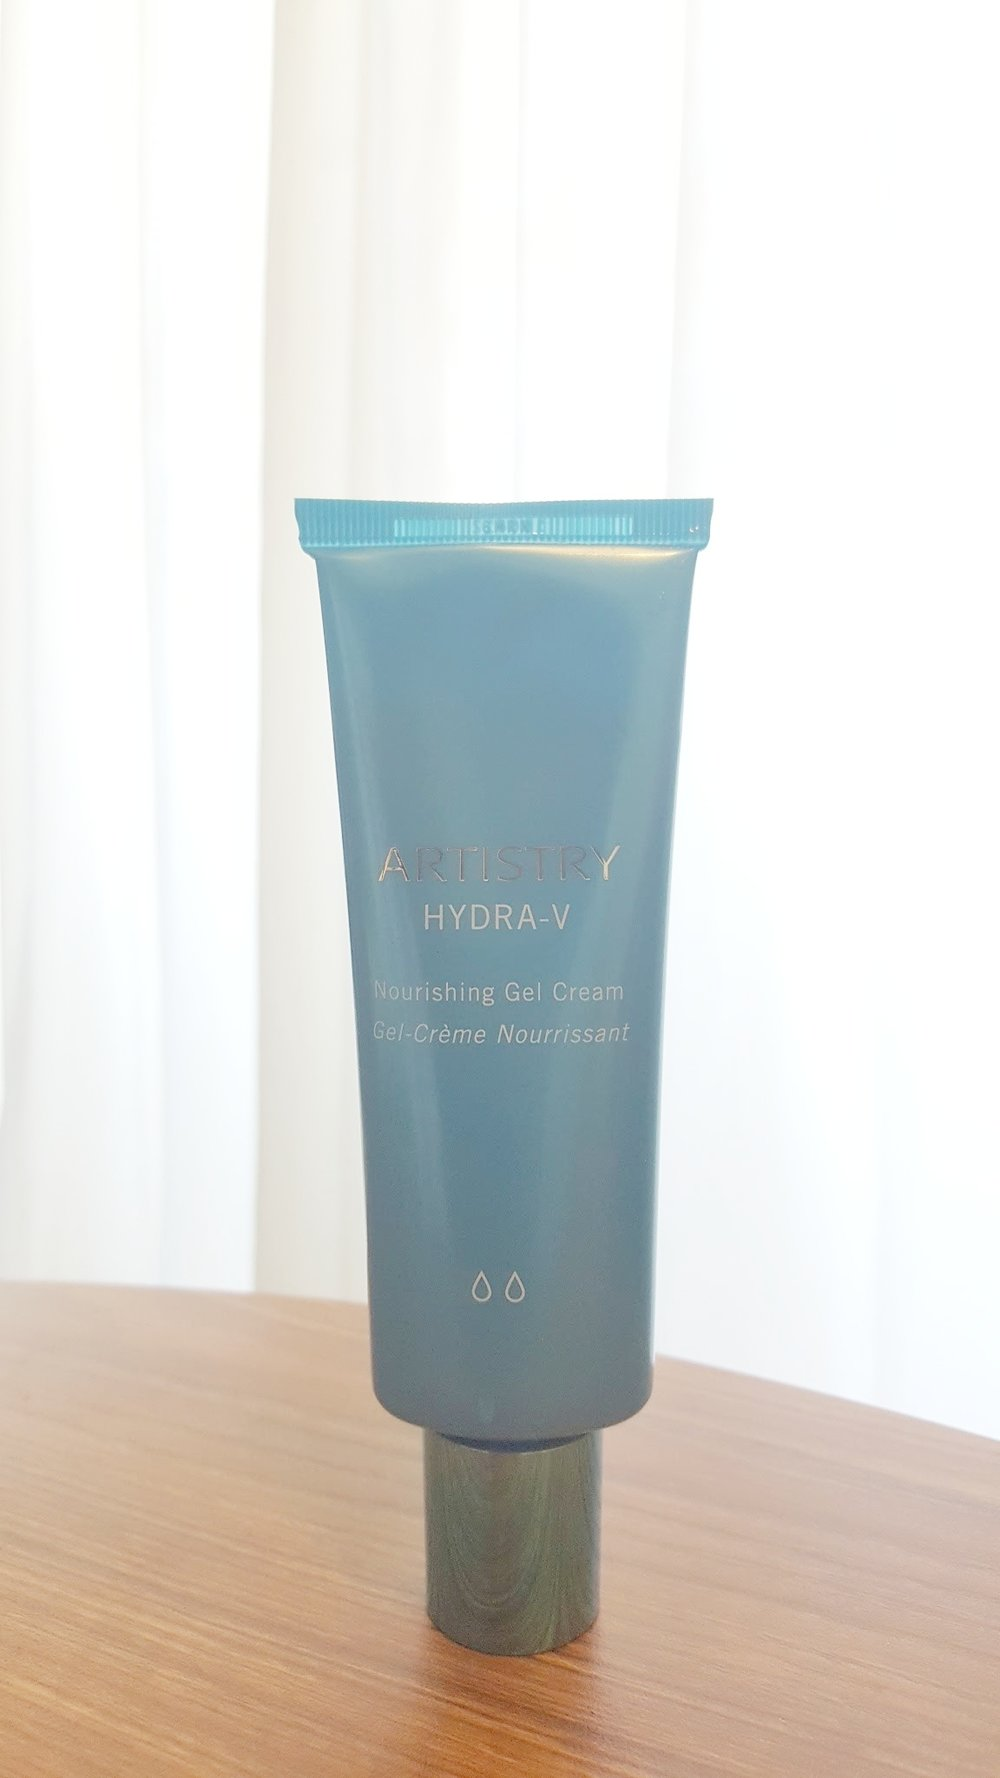 For my face I use the Artistry Hydra-V Nourishing Gel Cream. This is both light and moisturizing.  It's not oily and keeps my skin smoothed and feeling well balanced.